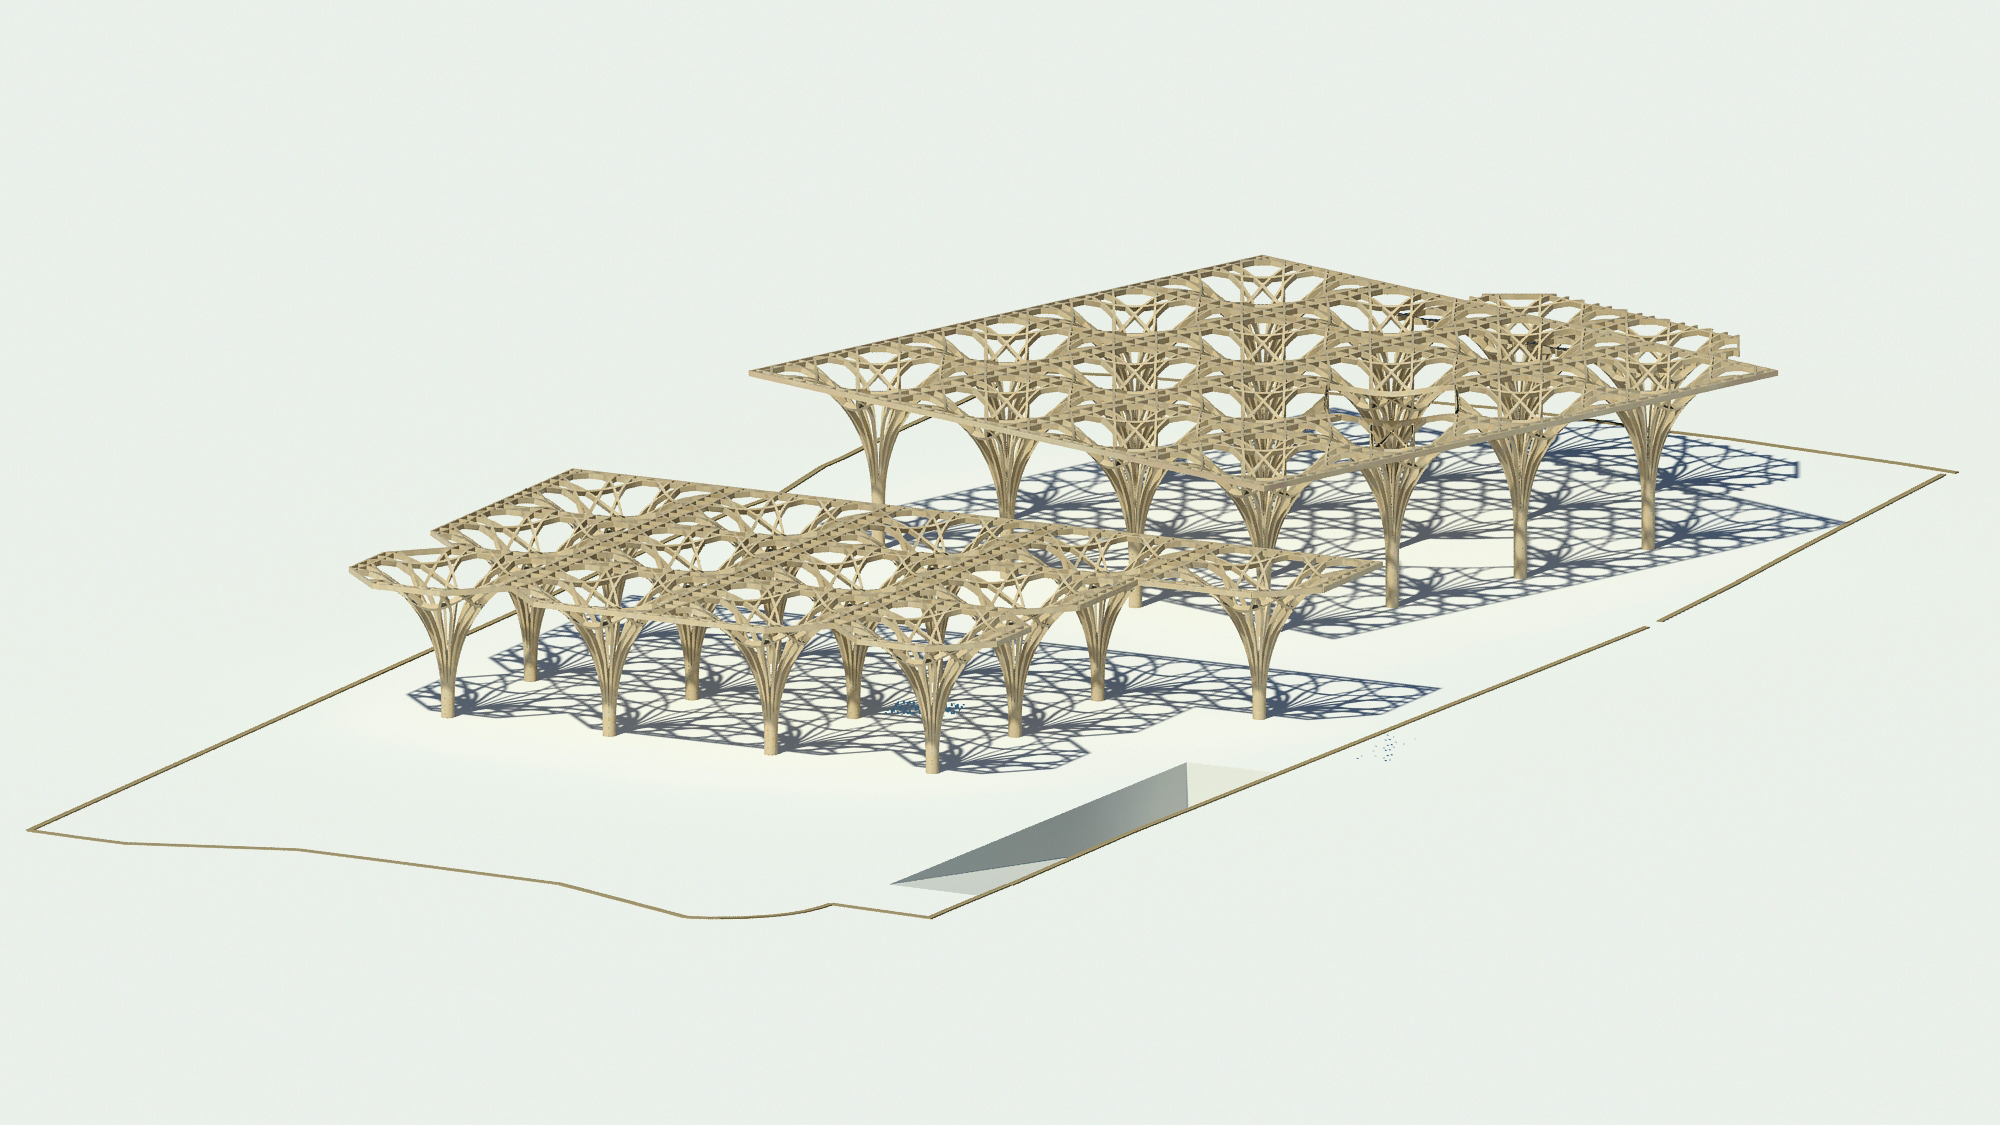 Tree Structure and Roof. The Cambridge Mosque by Marks Barfield Architects